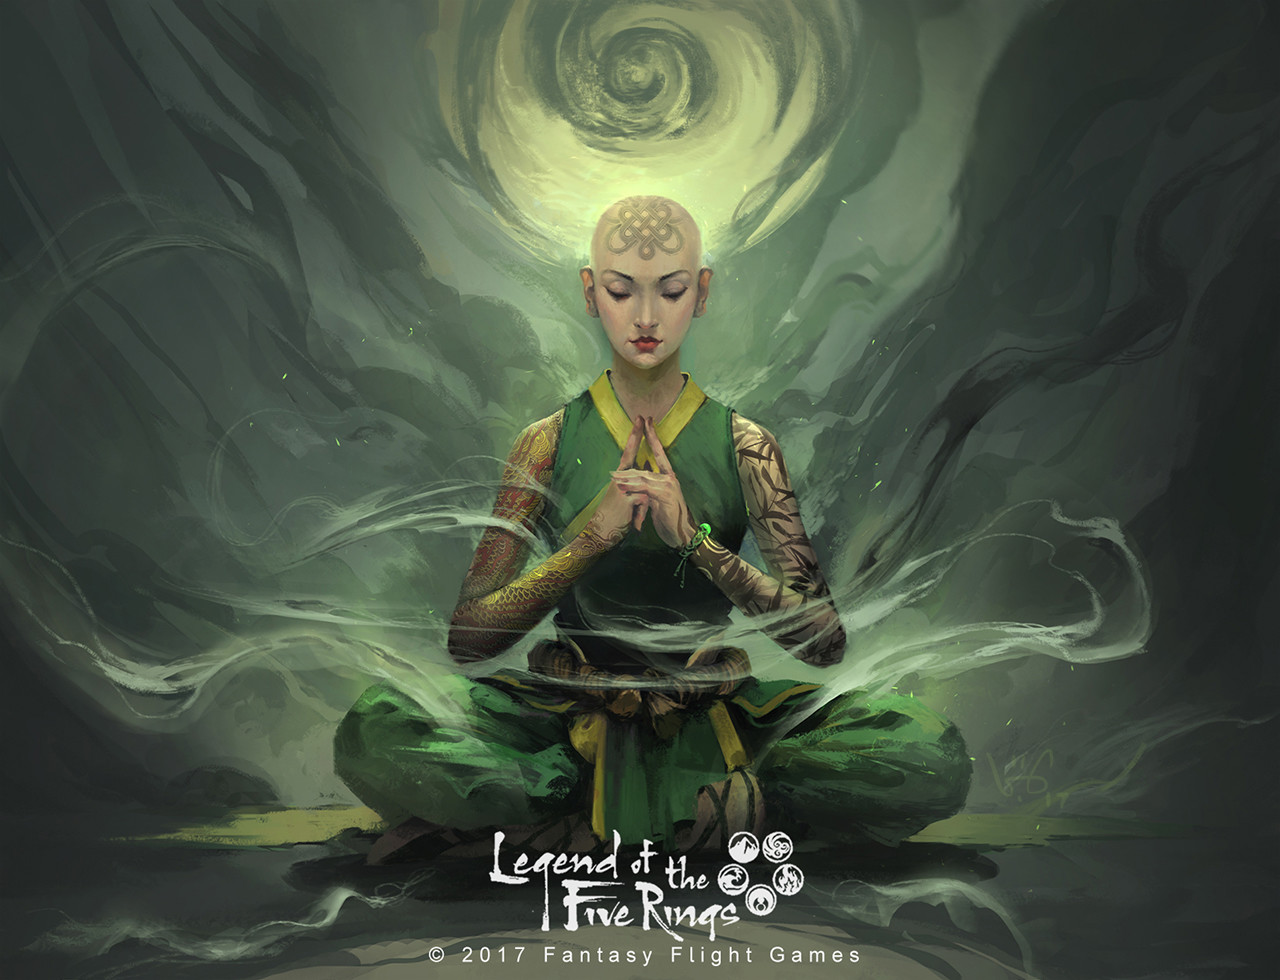 le vuong digital painting illustration Legend of the five Rings Togashi Yokuni green man